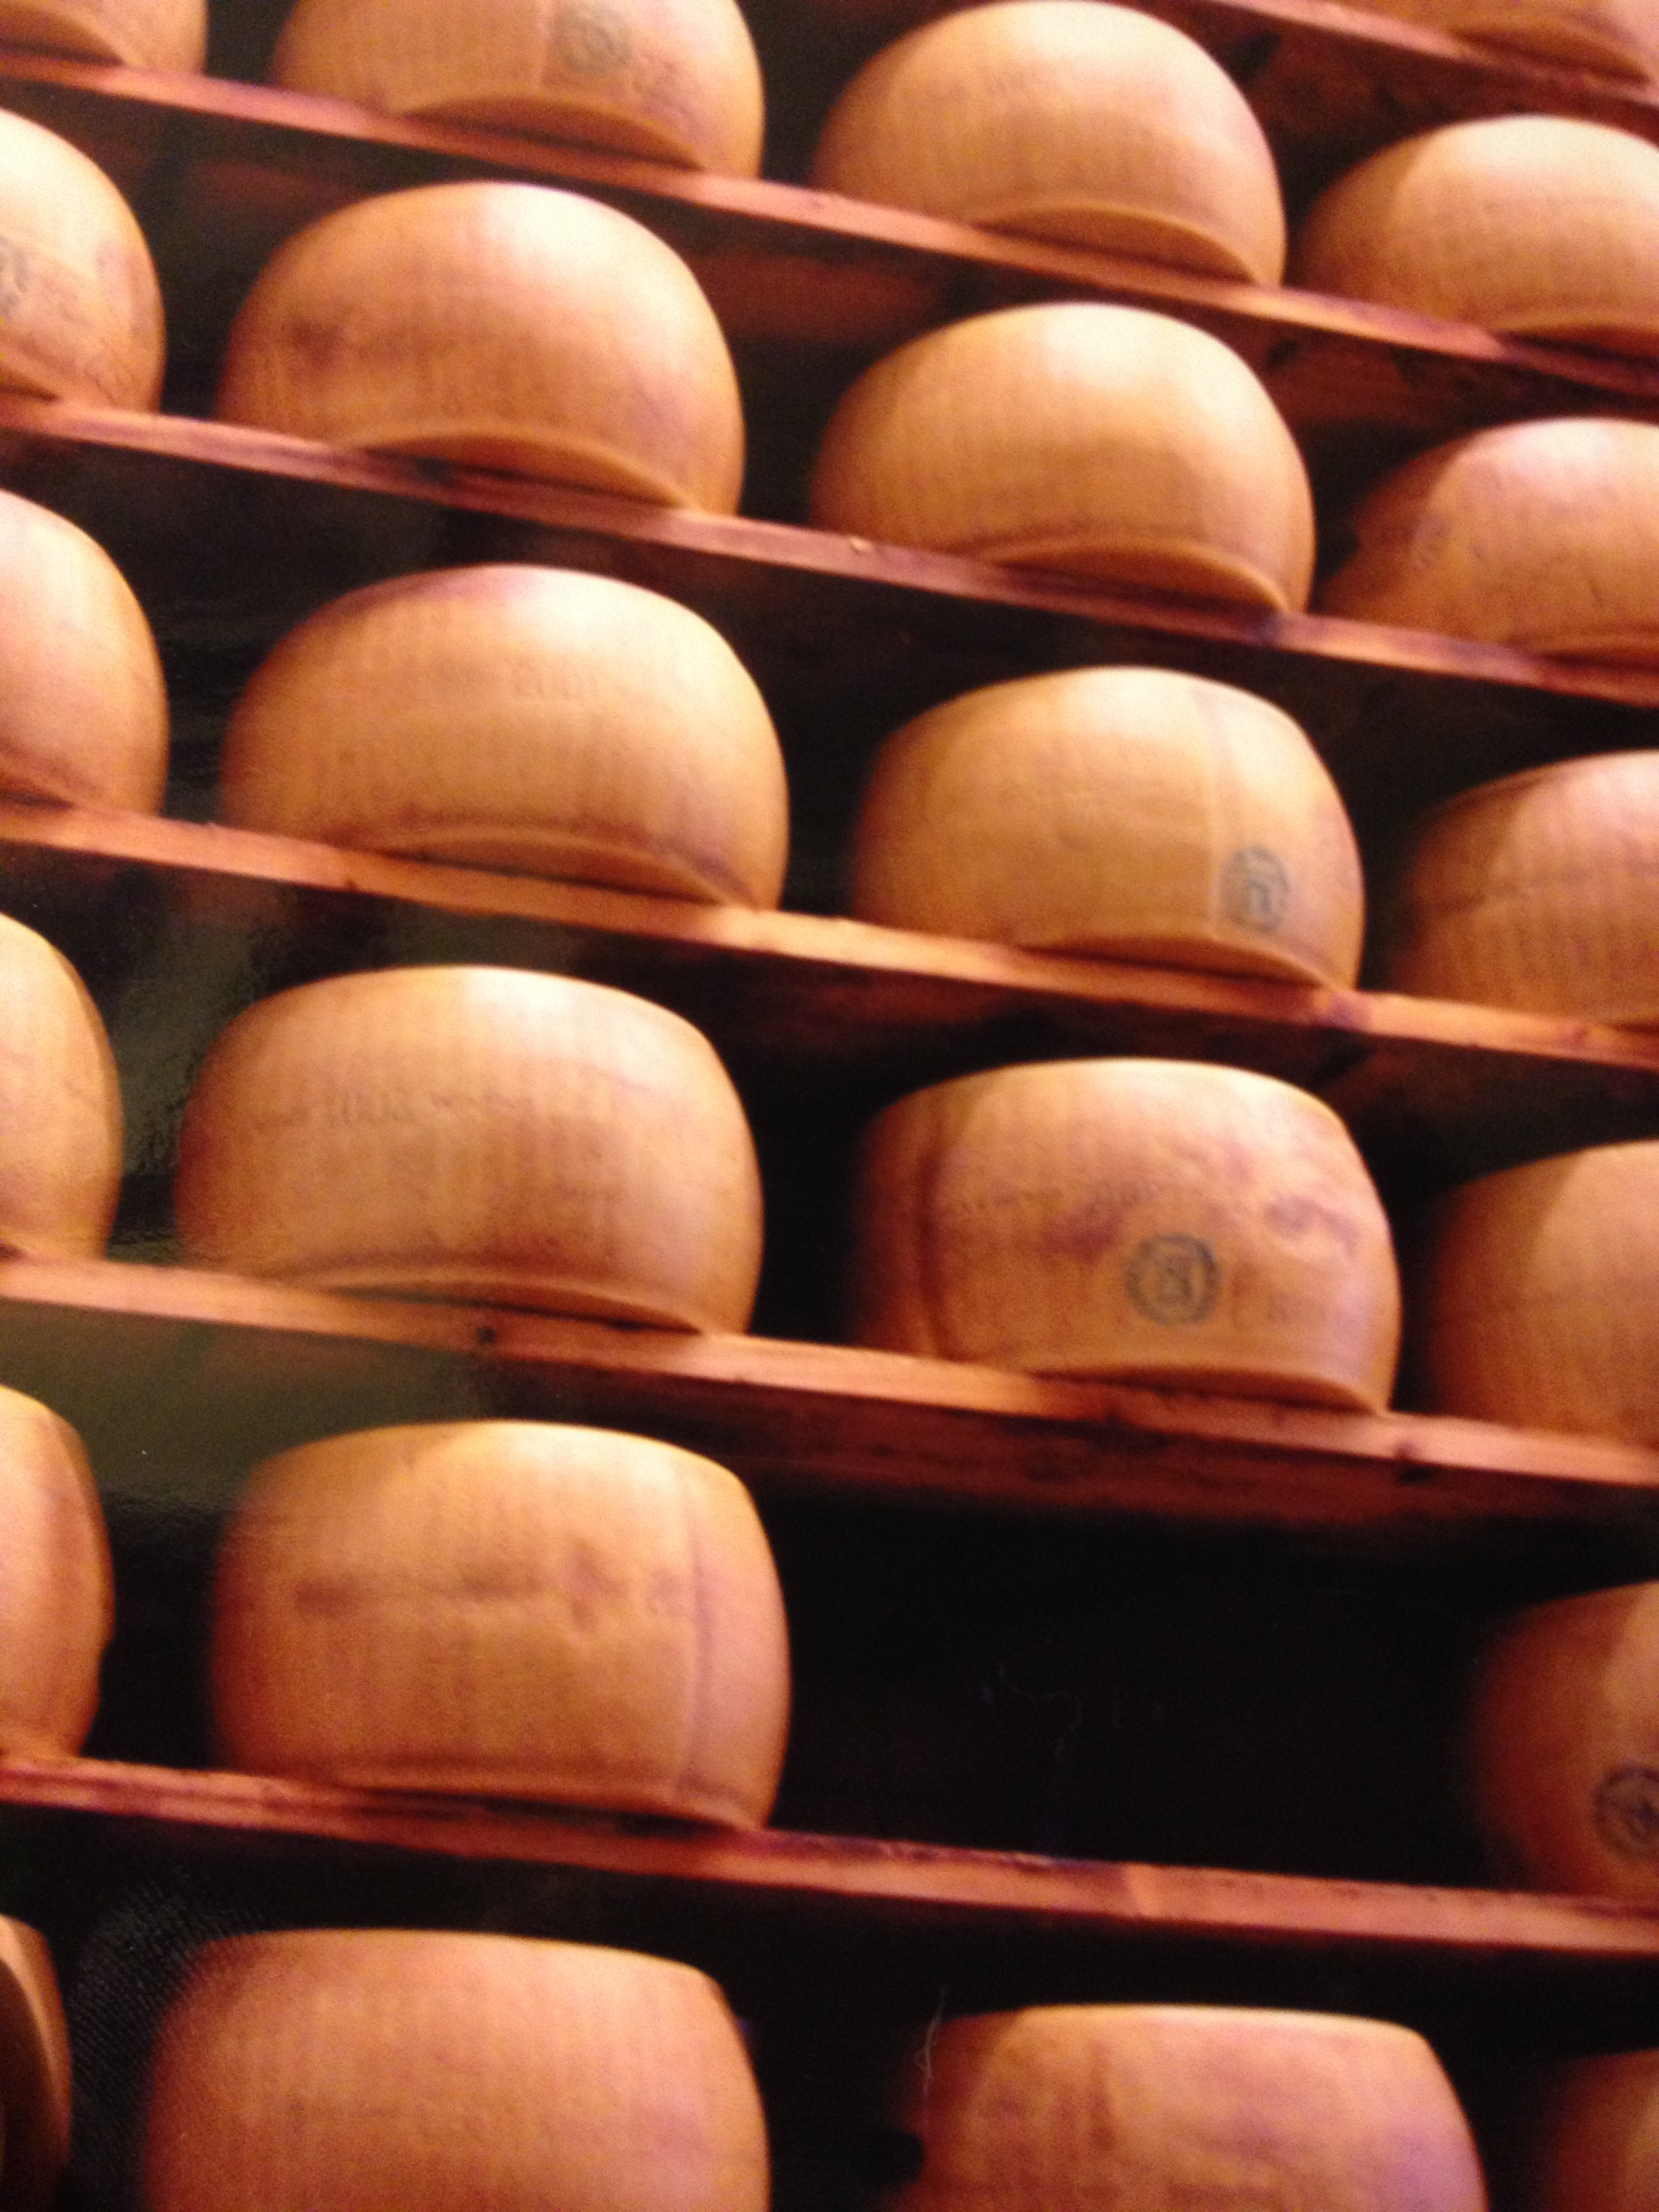 Lots and lots of Parmesan cheese aging.